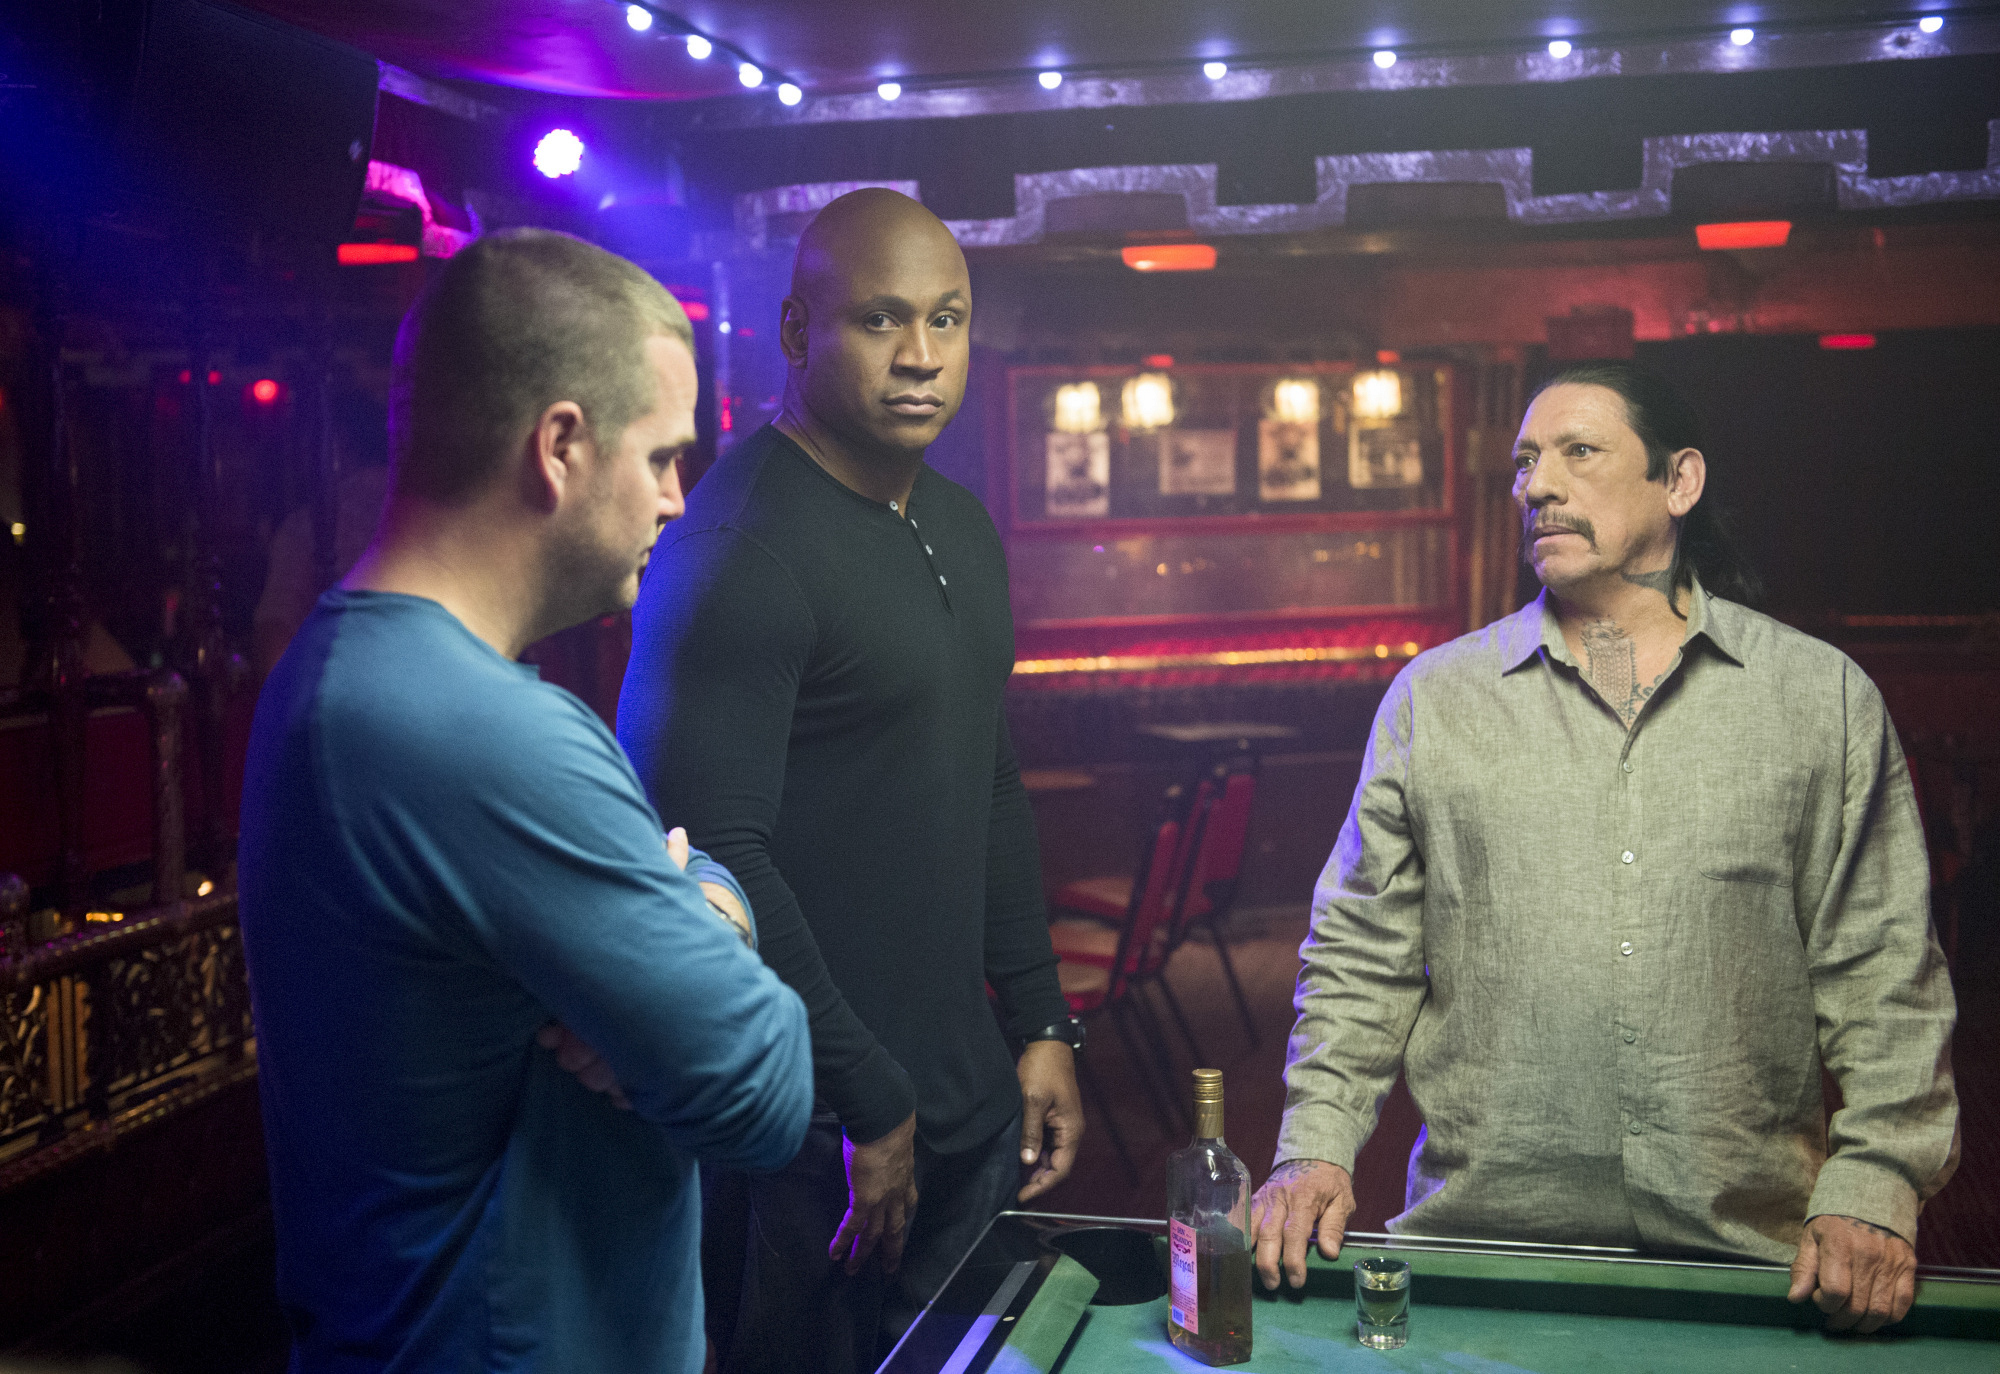 Season 5 Episode 15 Photos - NCISLA